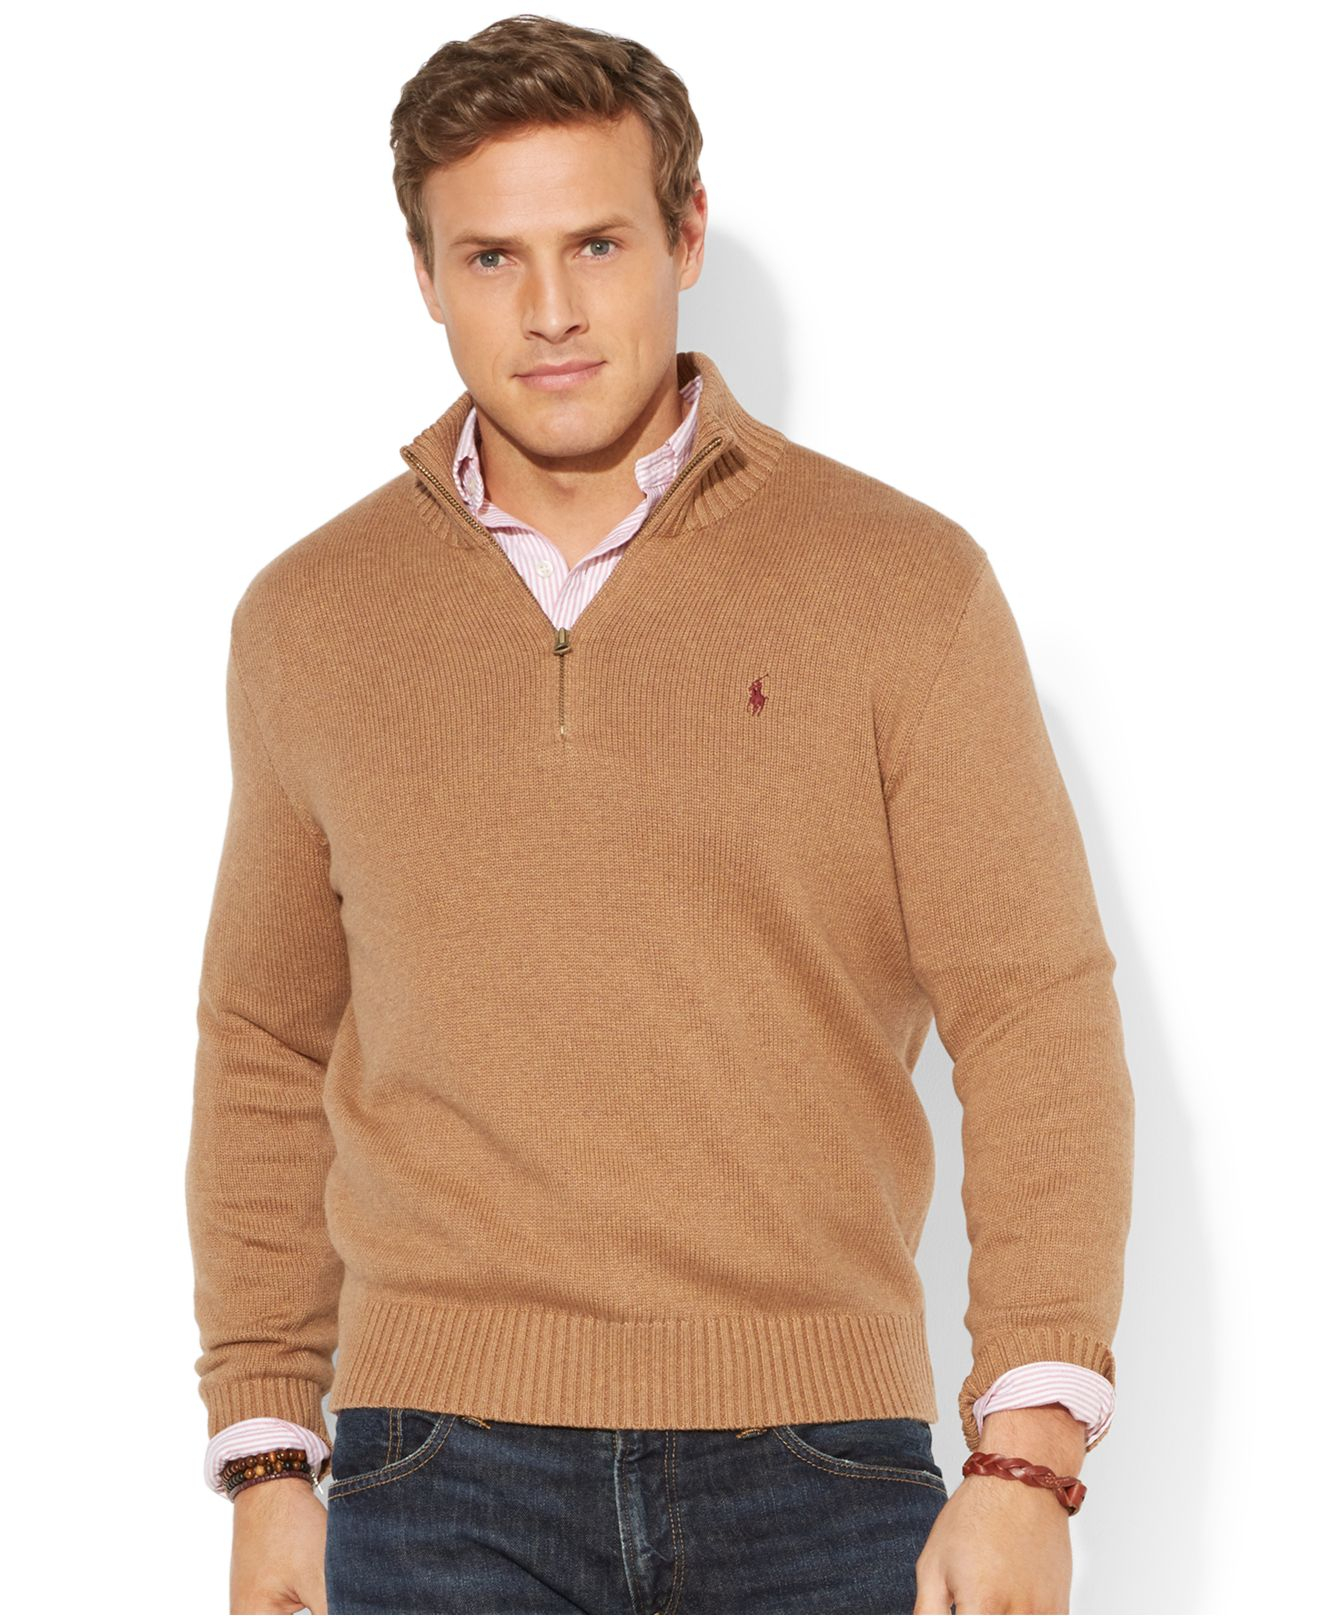 Polo sweater half zip sweater tunic for Mens sweater collared shirt